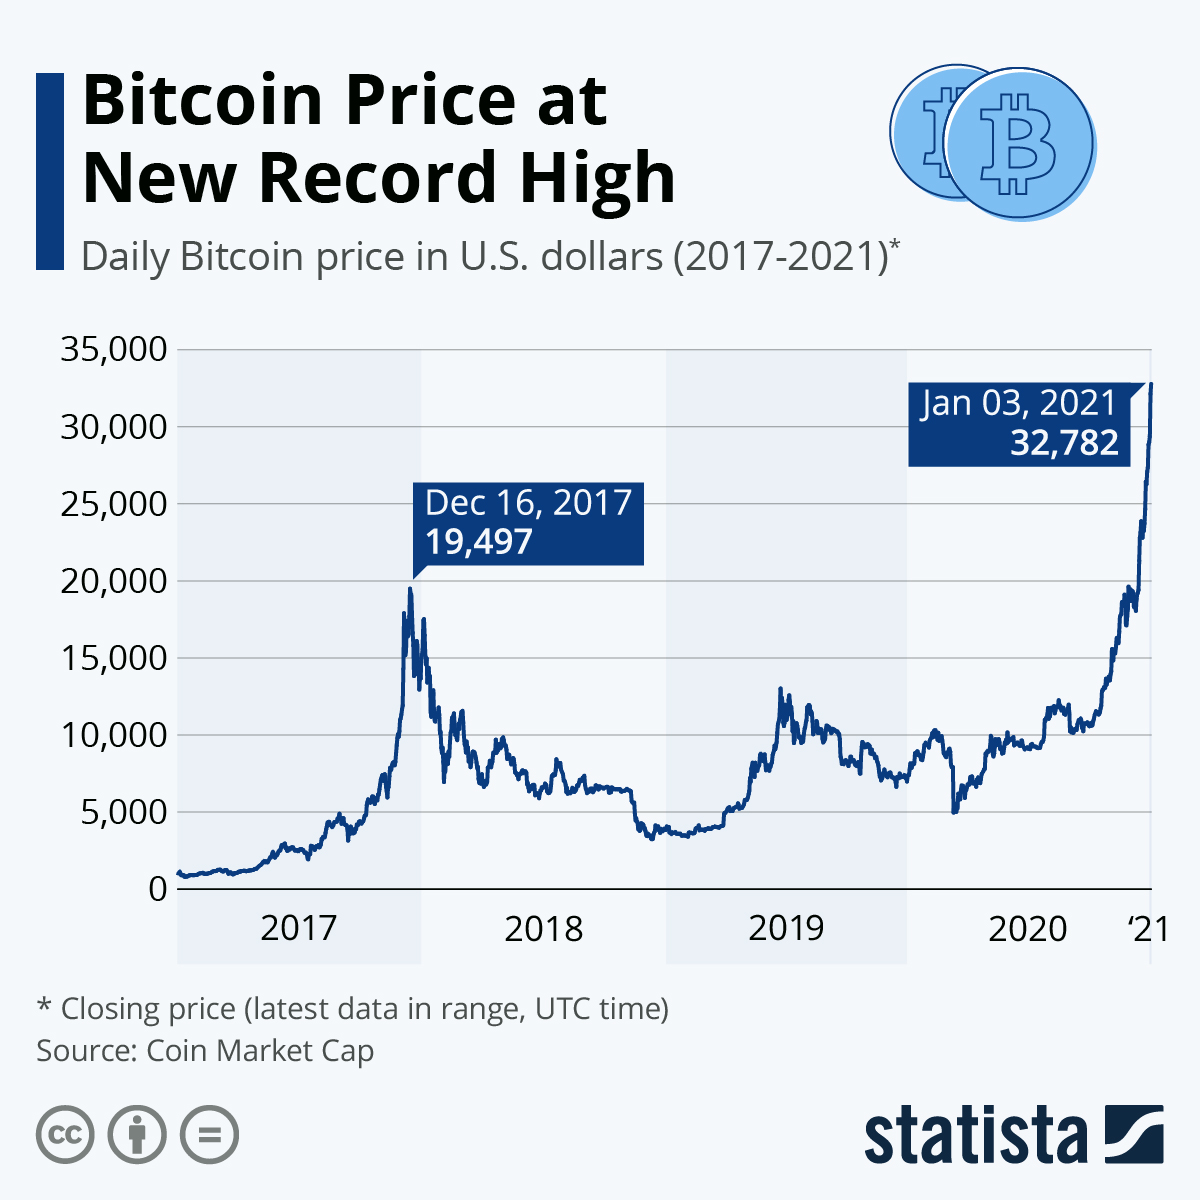 Bitcoin Price at New Record High